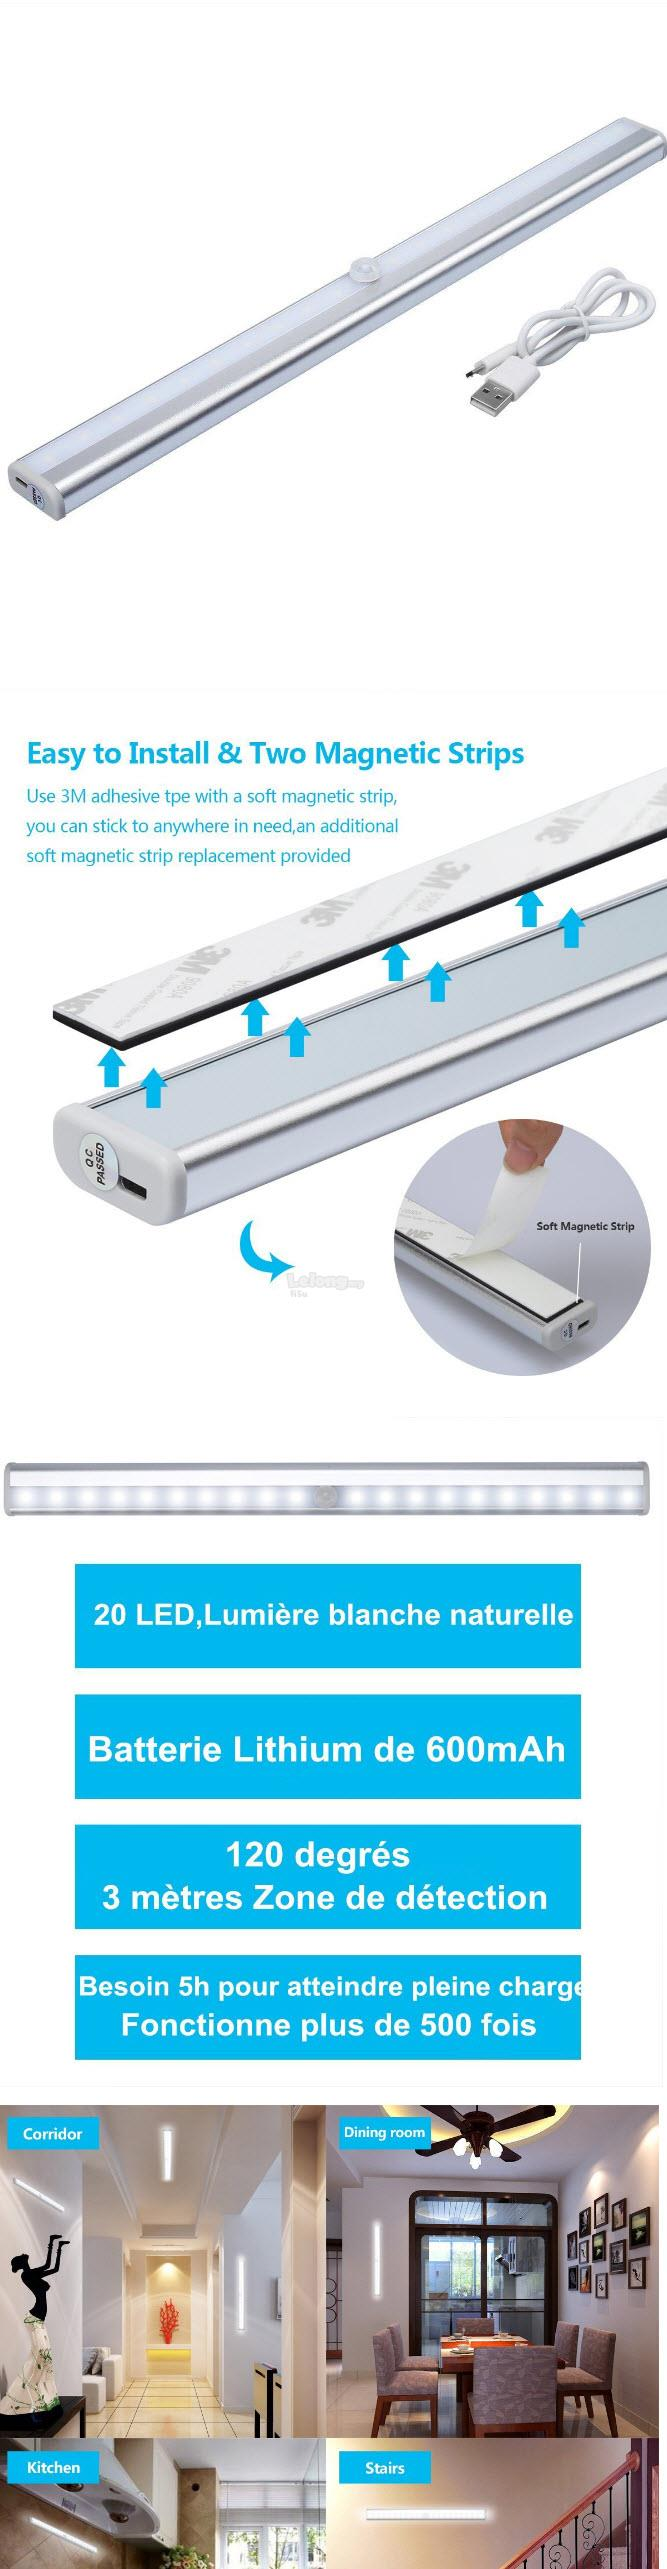 PIR Motion Sensor Cabinet LED Light (end 5/19/2019 10:15 PM)